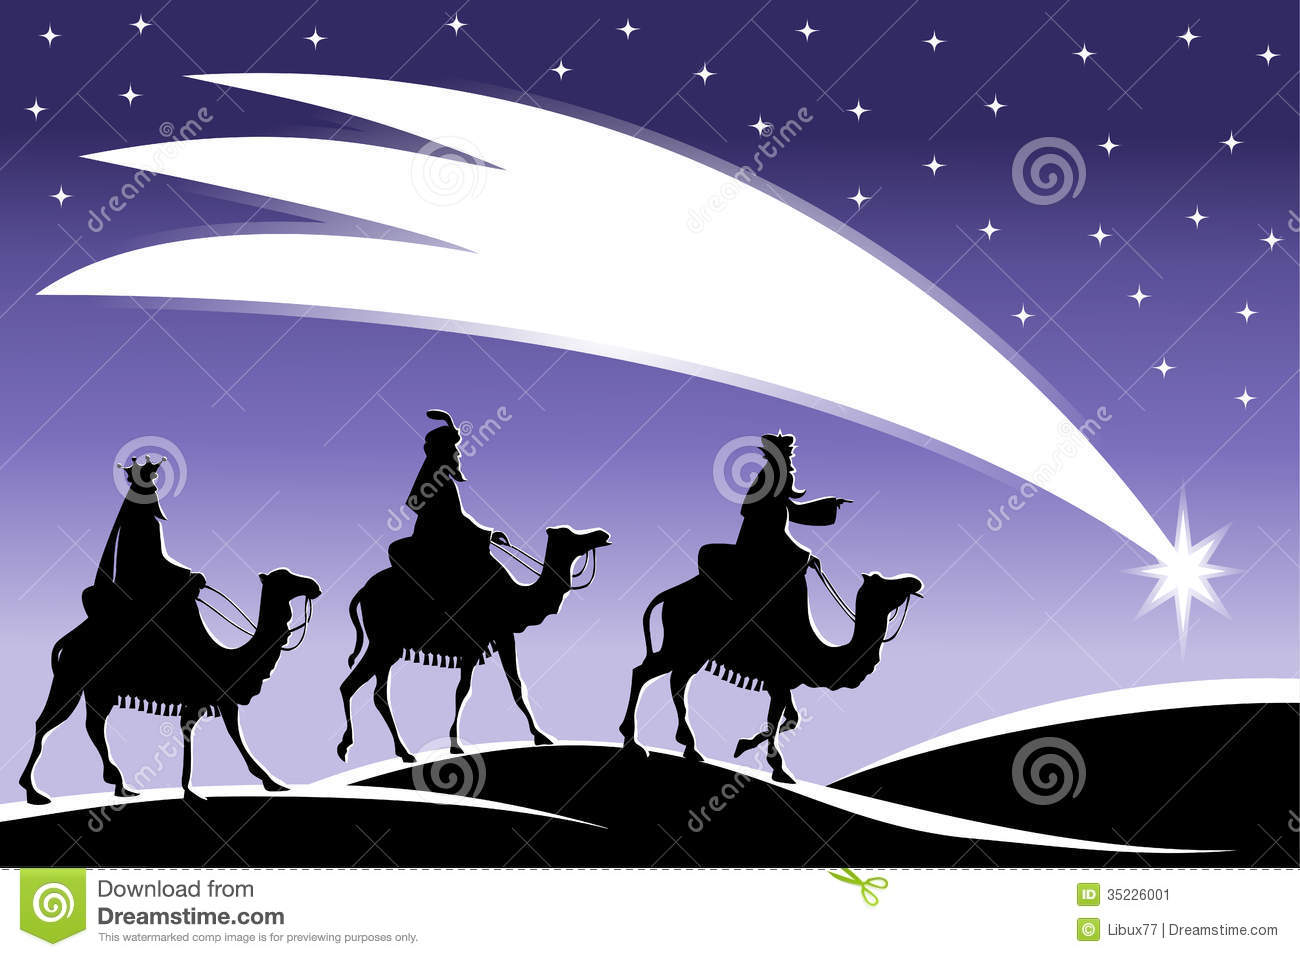 Three Wise Men Star Three wise men following the